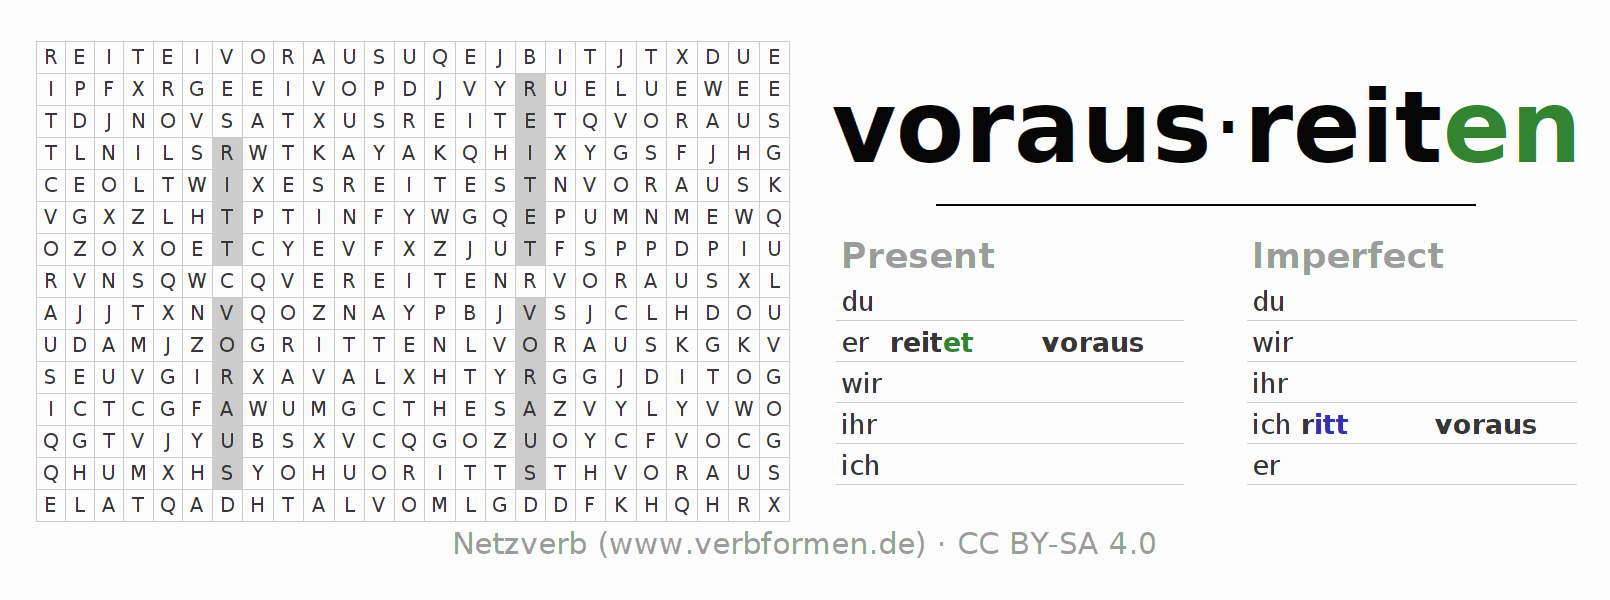 Word search puzzle for the conjugation of the verb vorausreiten